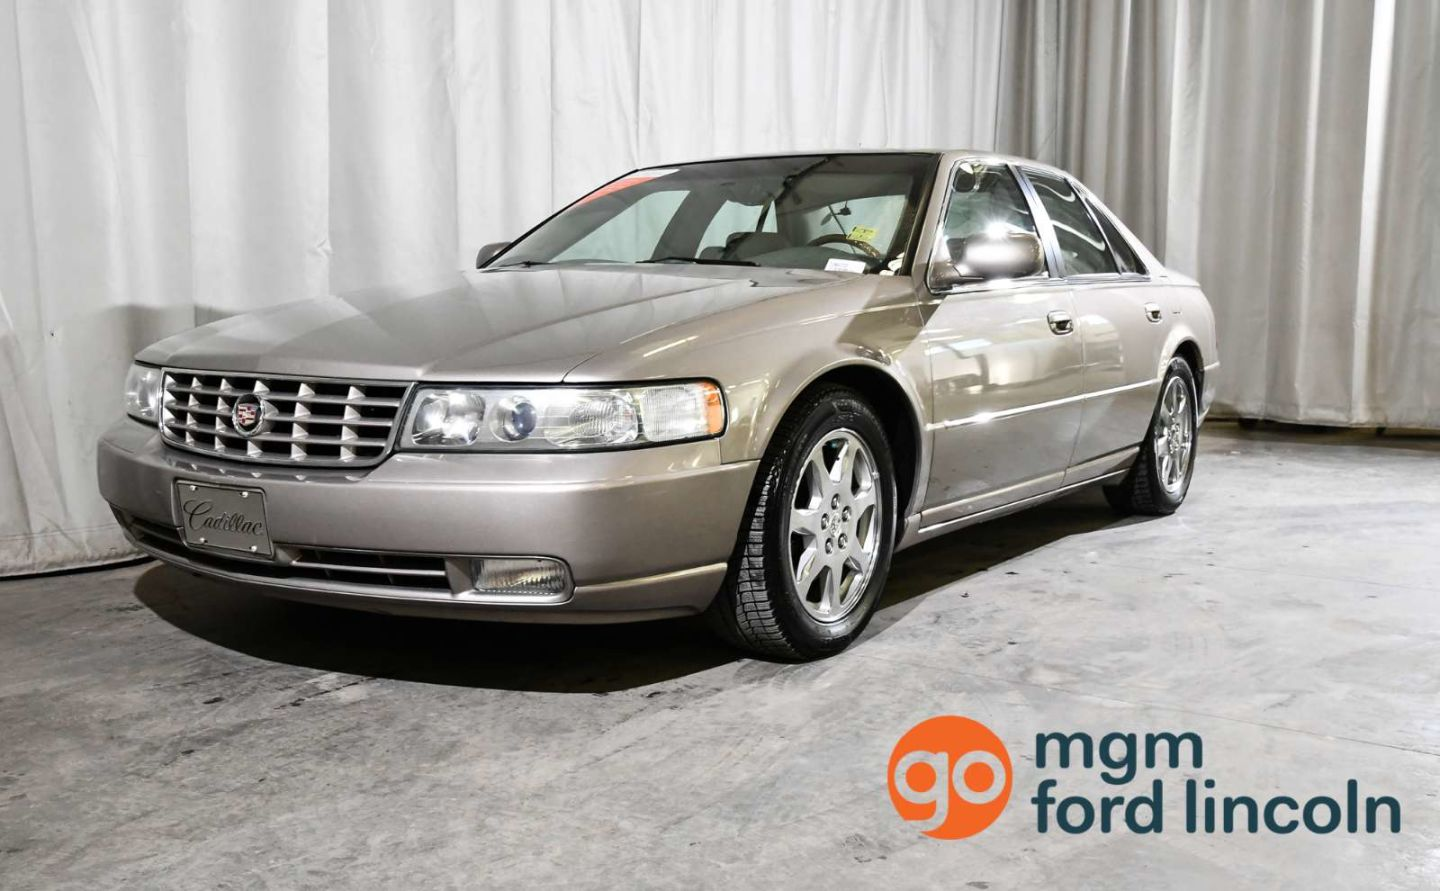 2003 Cadillac Seville Touring STS for sale in Red Deer, Alberta